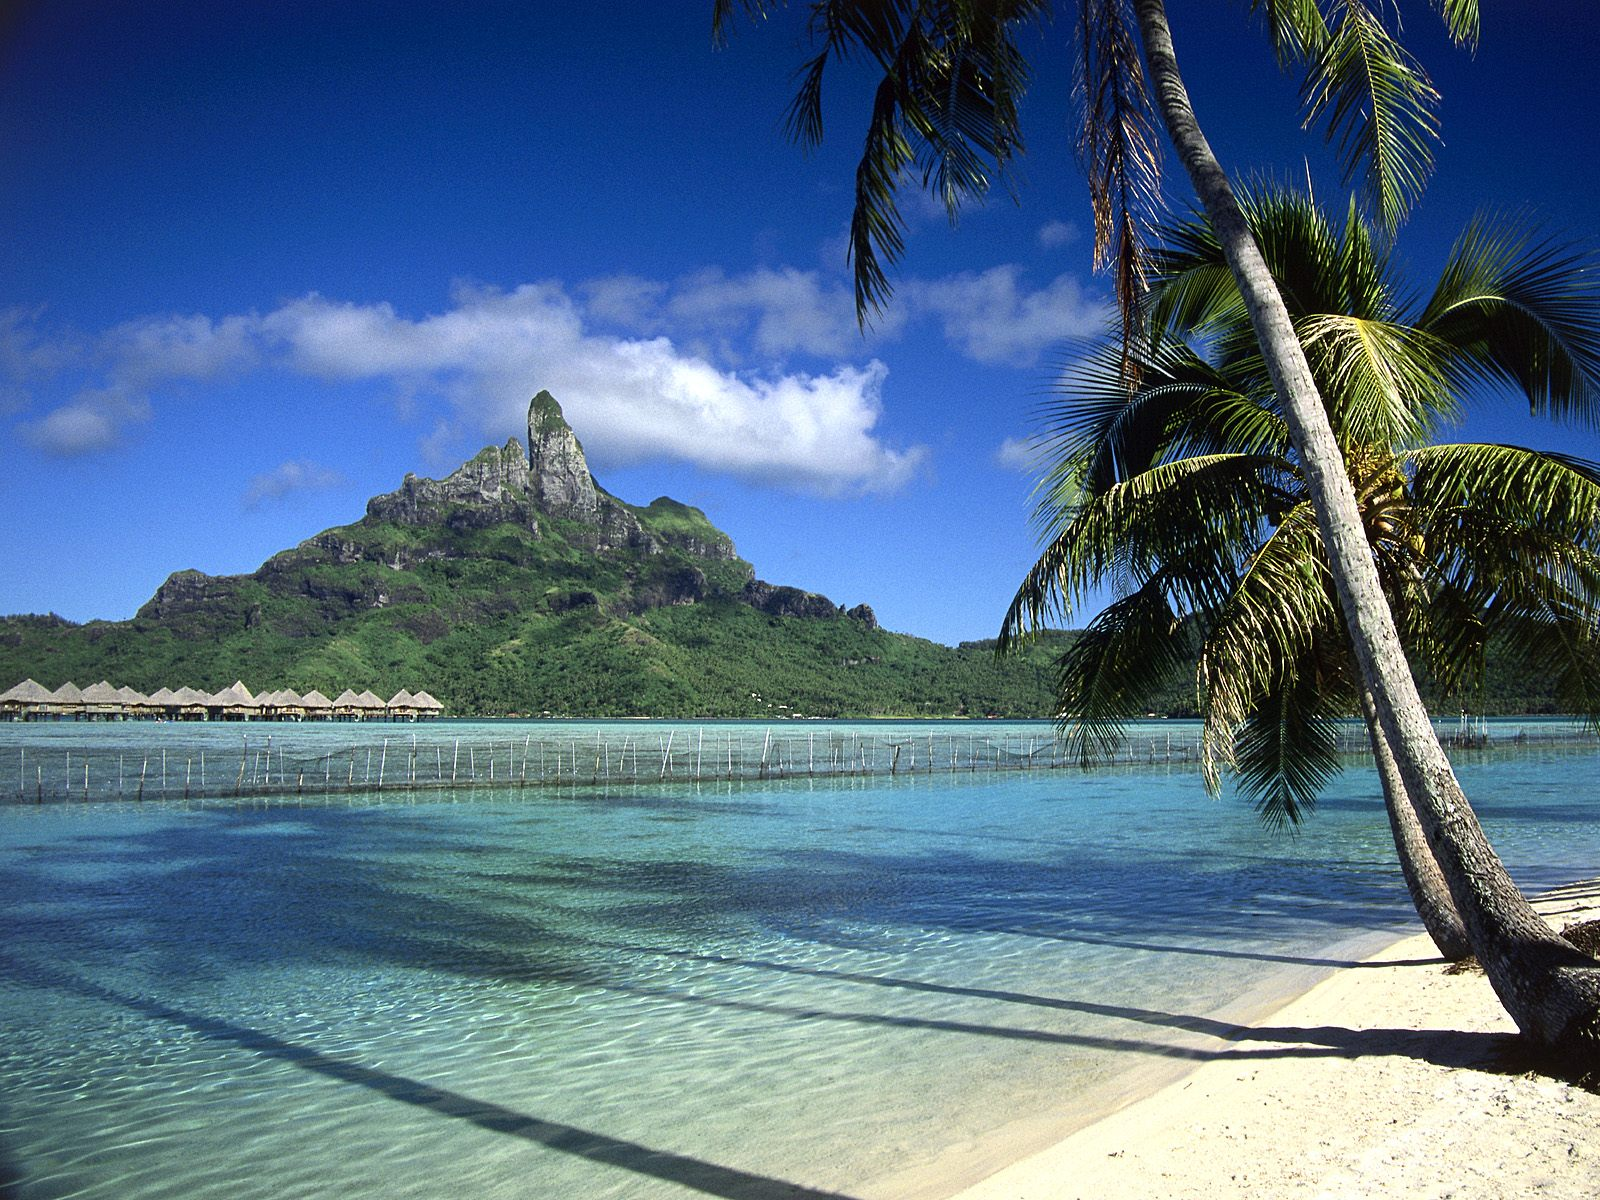 1600x1200 bora bora desktop pc and mac wallpaper - Desktop wallpaper 1600x1200 ...